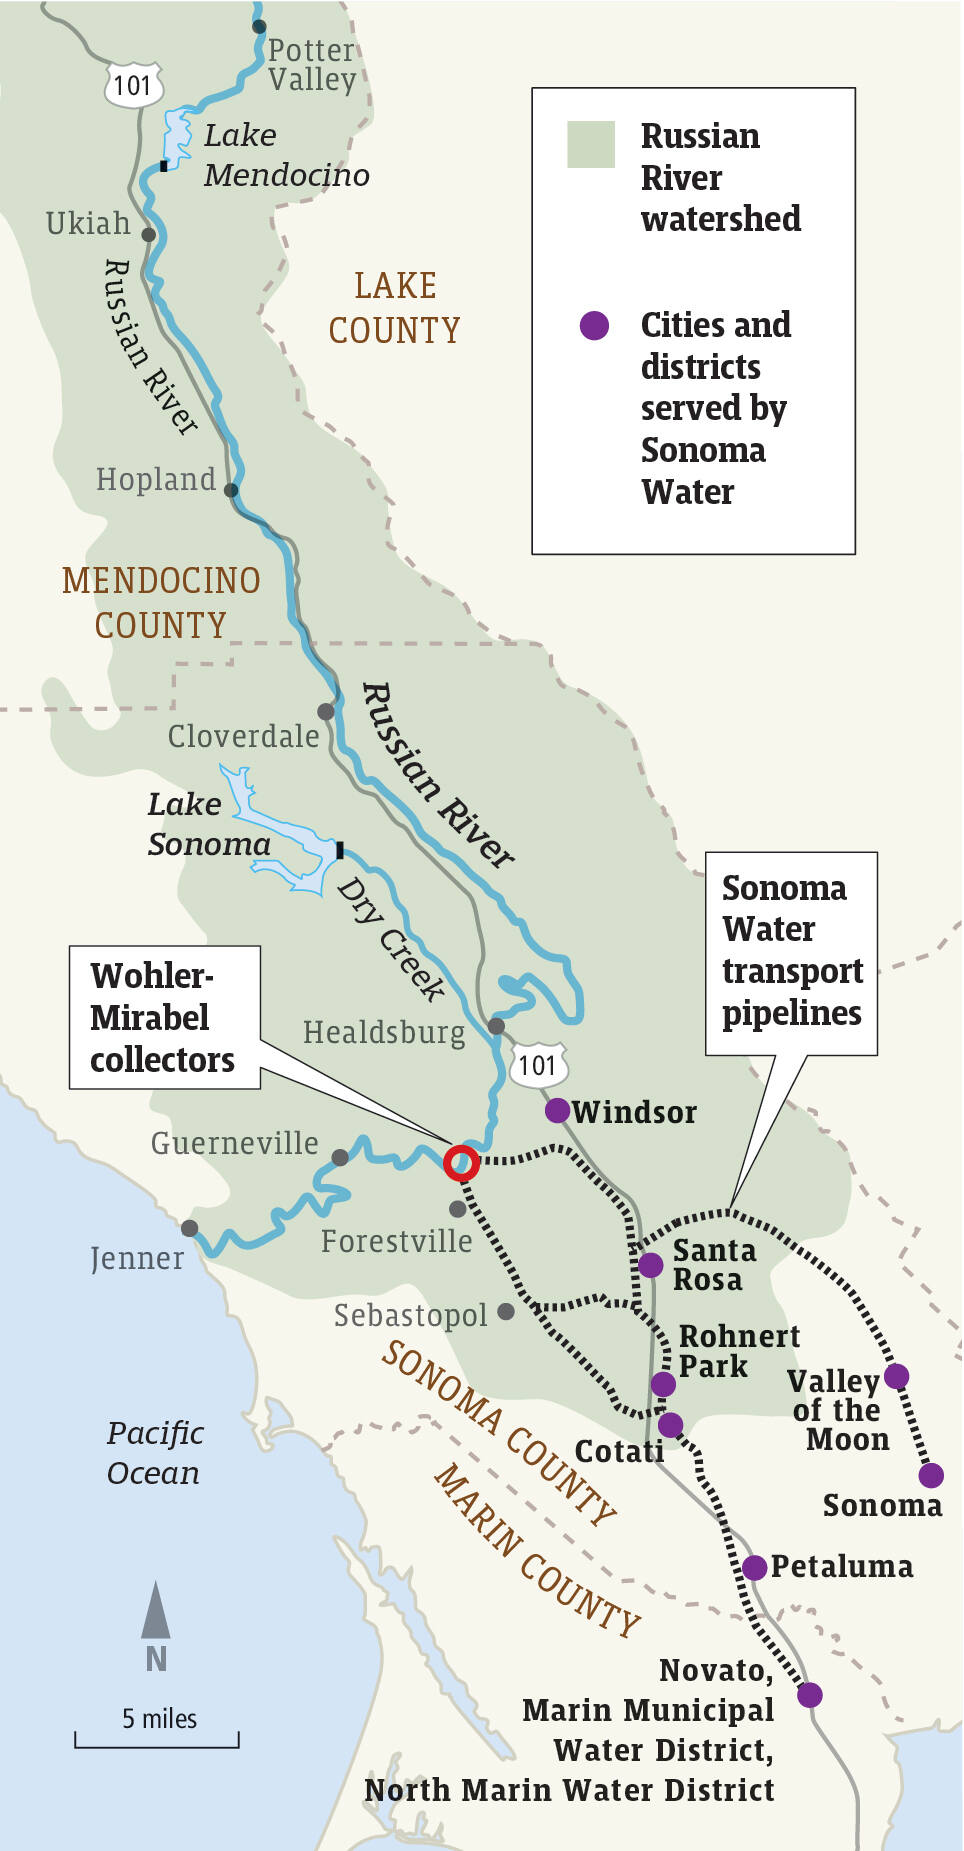 The Russian River watershed, which runs through Mendocino and Sonoma counties, supplies water to cities and towns along the river as well as to cities and districts served by the Sonoma Water. Source: Sonoma Water (Dennis Bolt / For The Press Democrat)